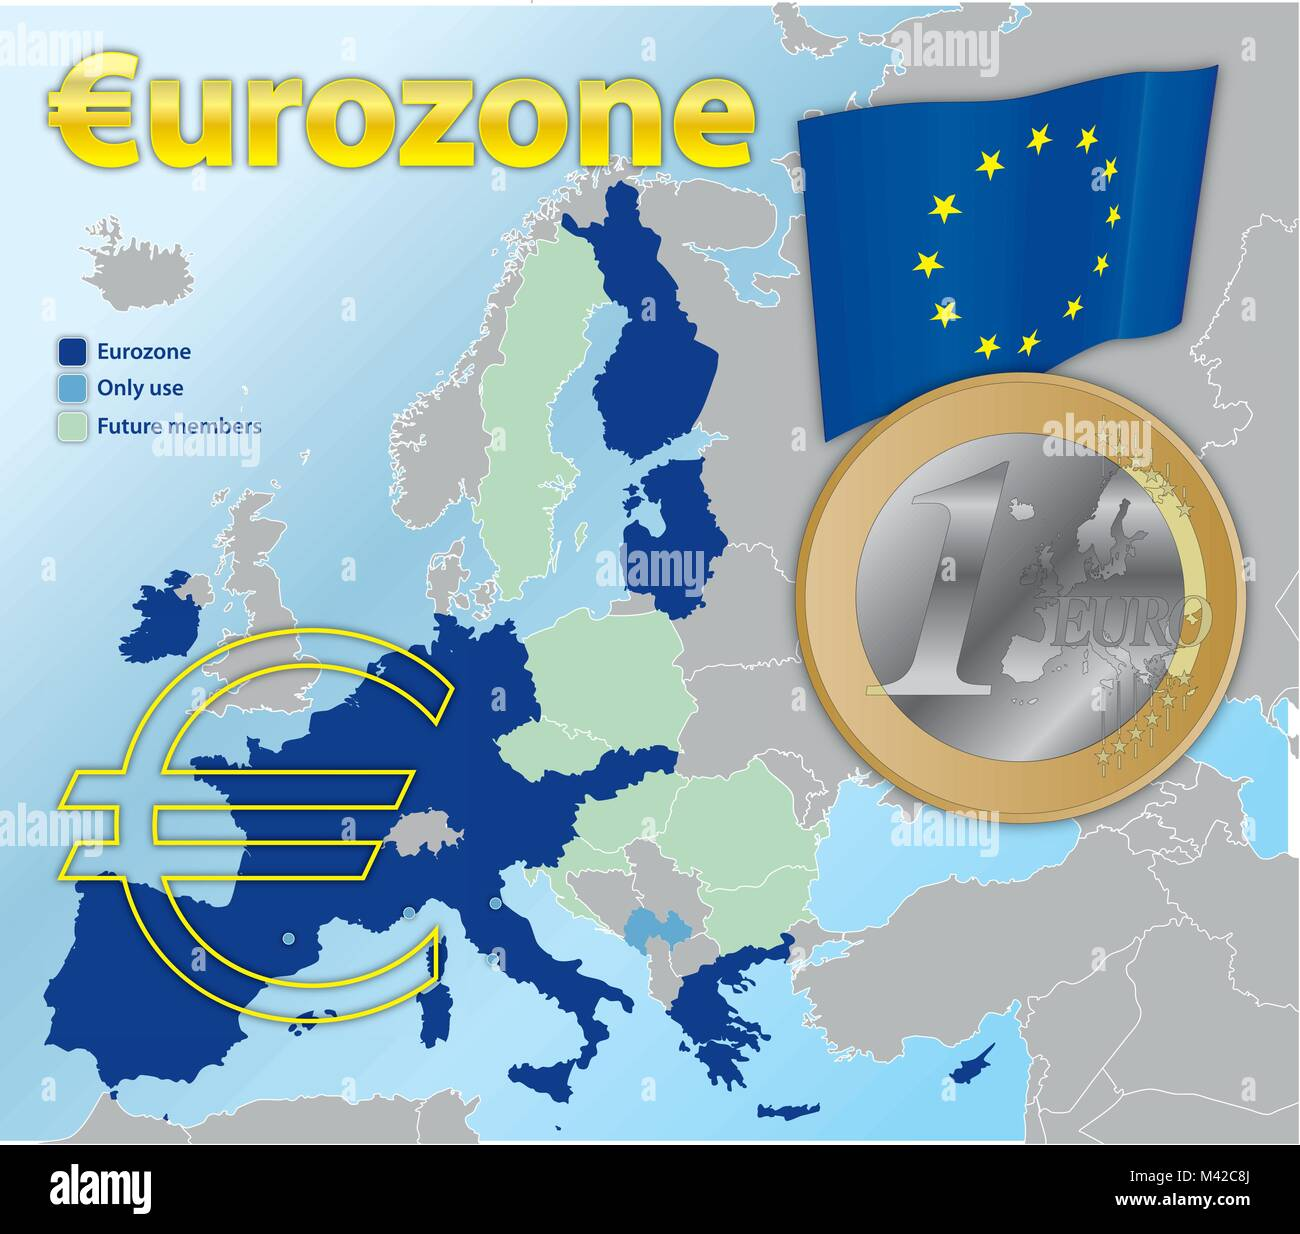 Euro zone currency map and 1 euro coin, vector illustration - Stock Image